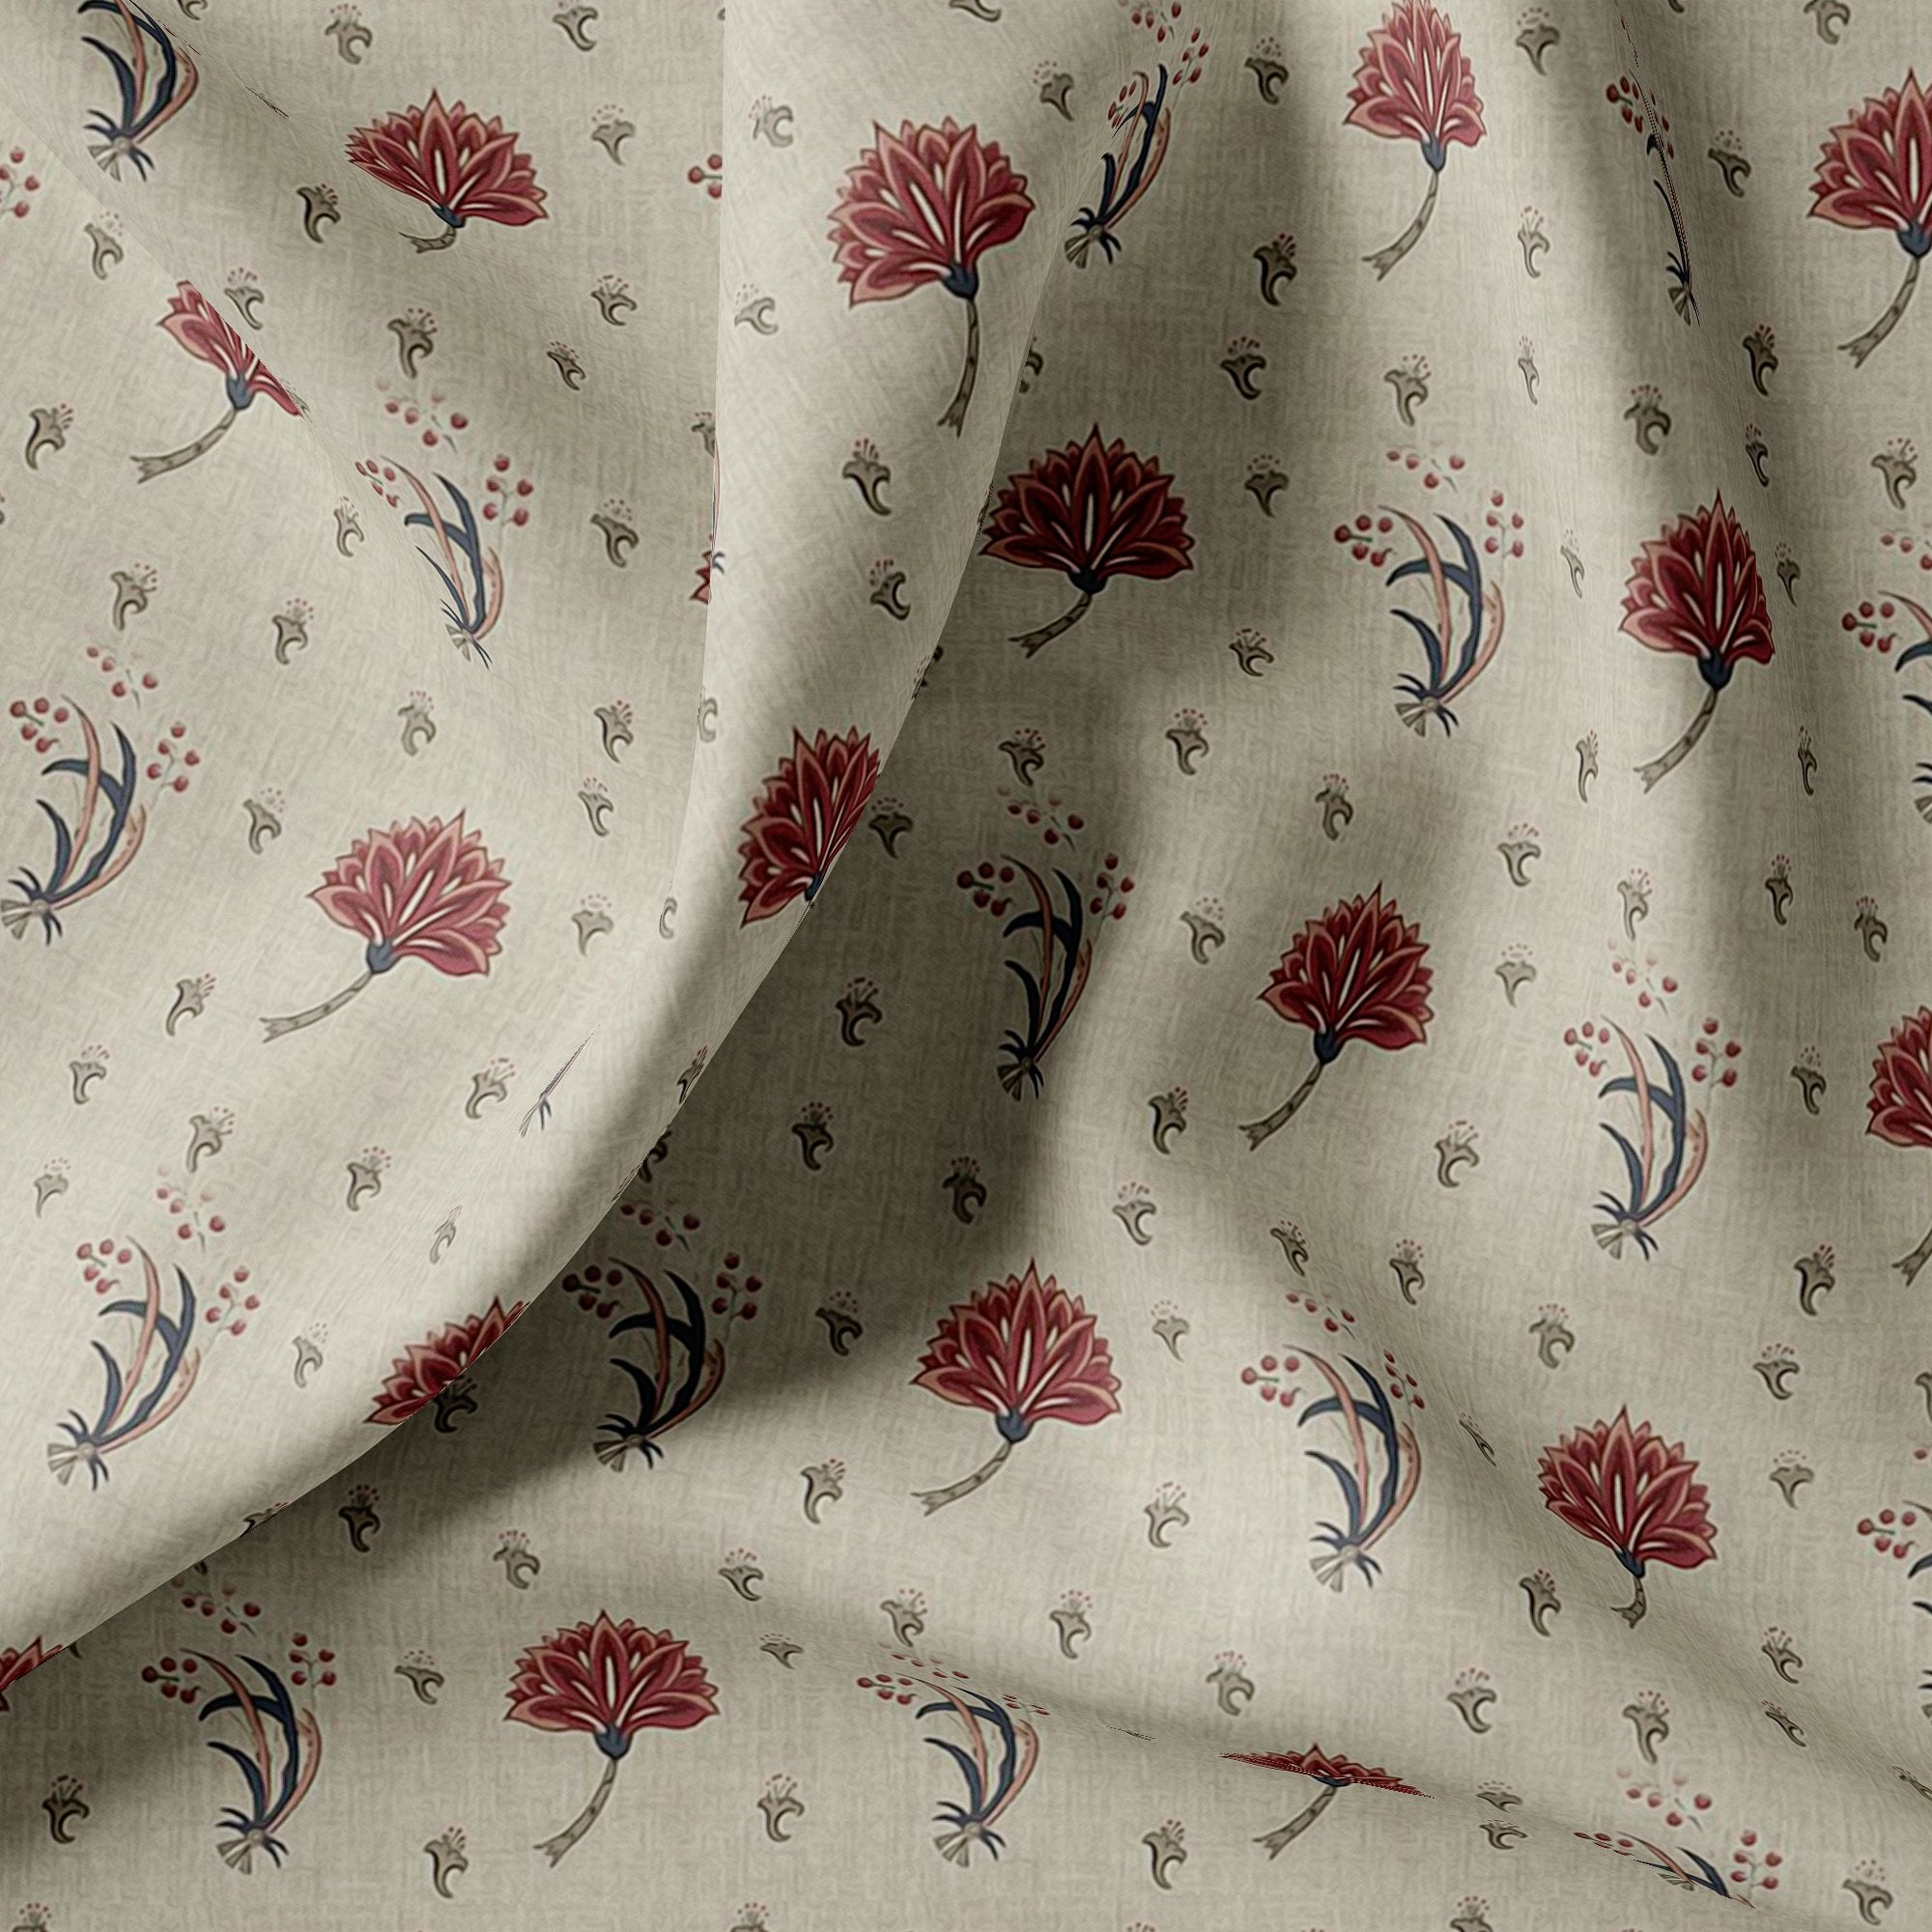 Fleur De Lis Design Digital Printed Fabric - FAB VOGUE Studio. Shop Fabric @ www.fabvoguestudio.com